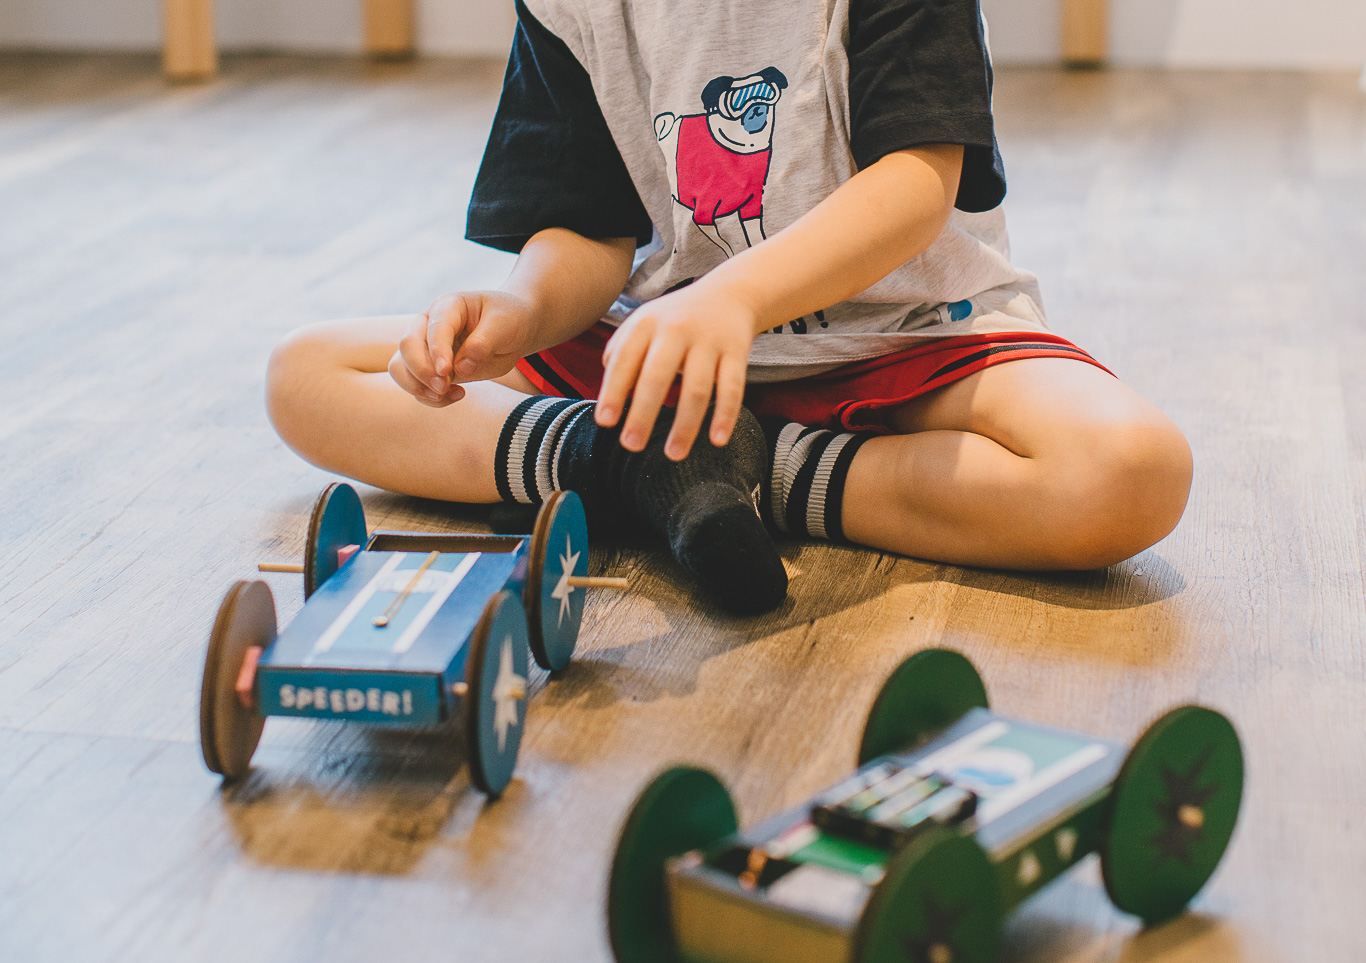 A kid plays with cardboard automated cars